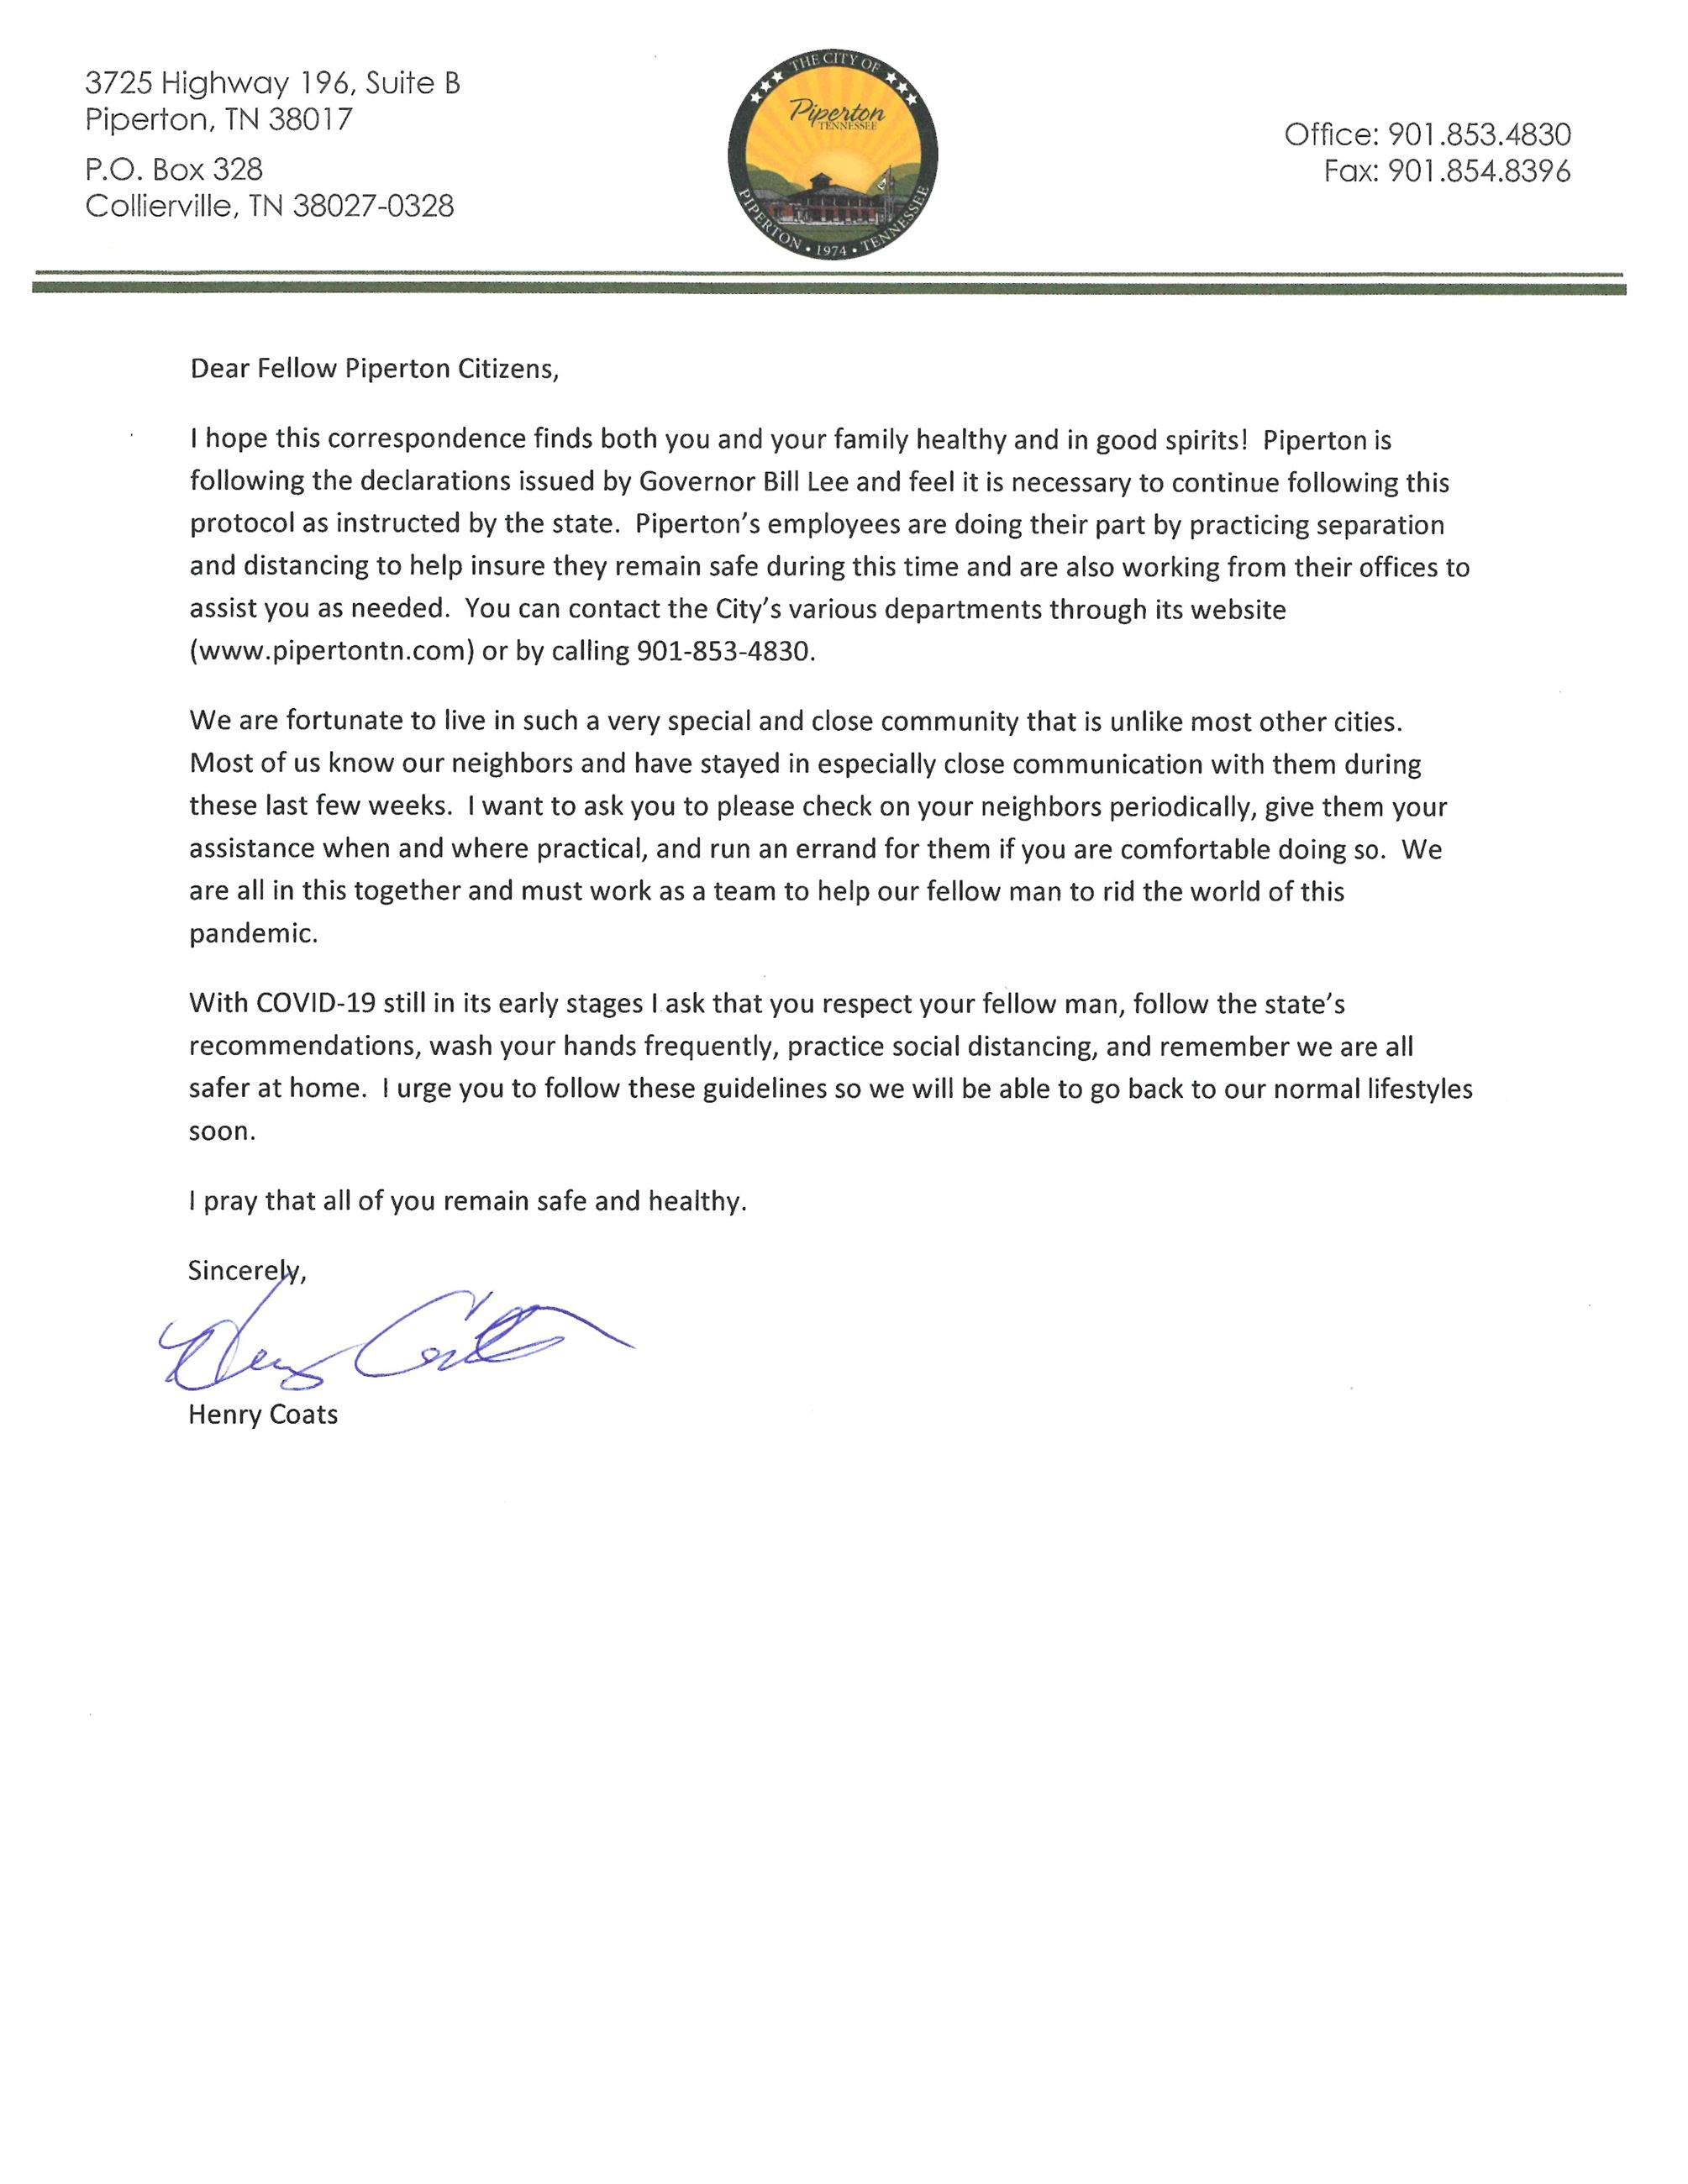 Message from the Mayor 4-1-20